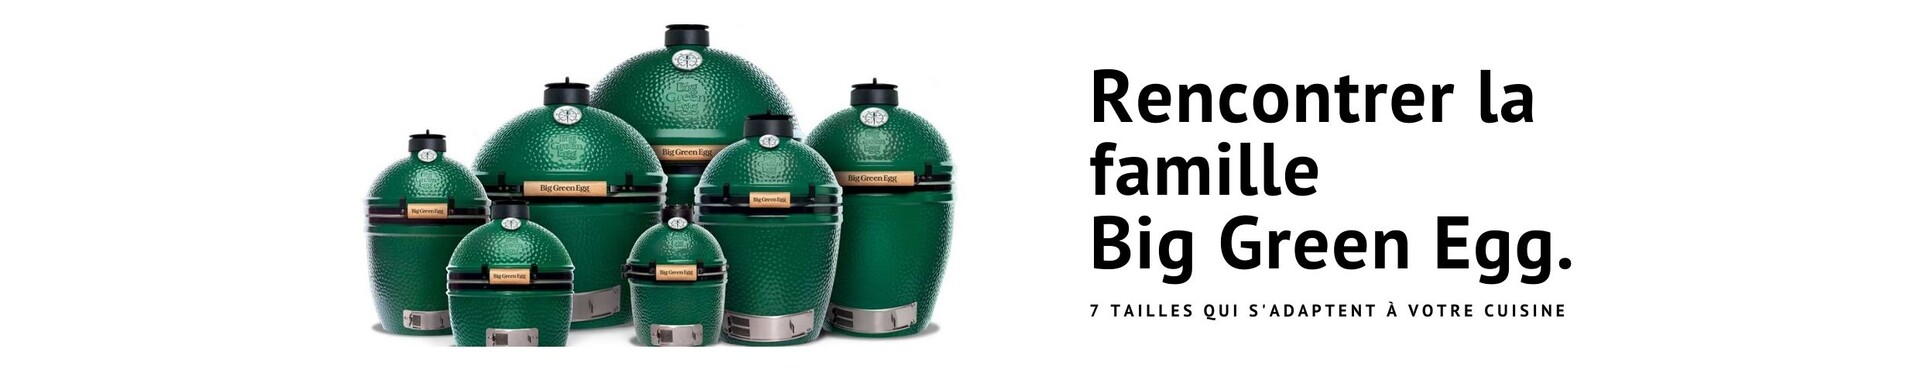 Marque Big Green Egg